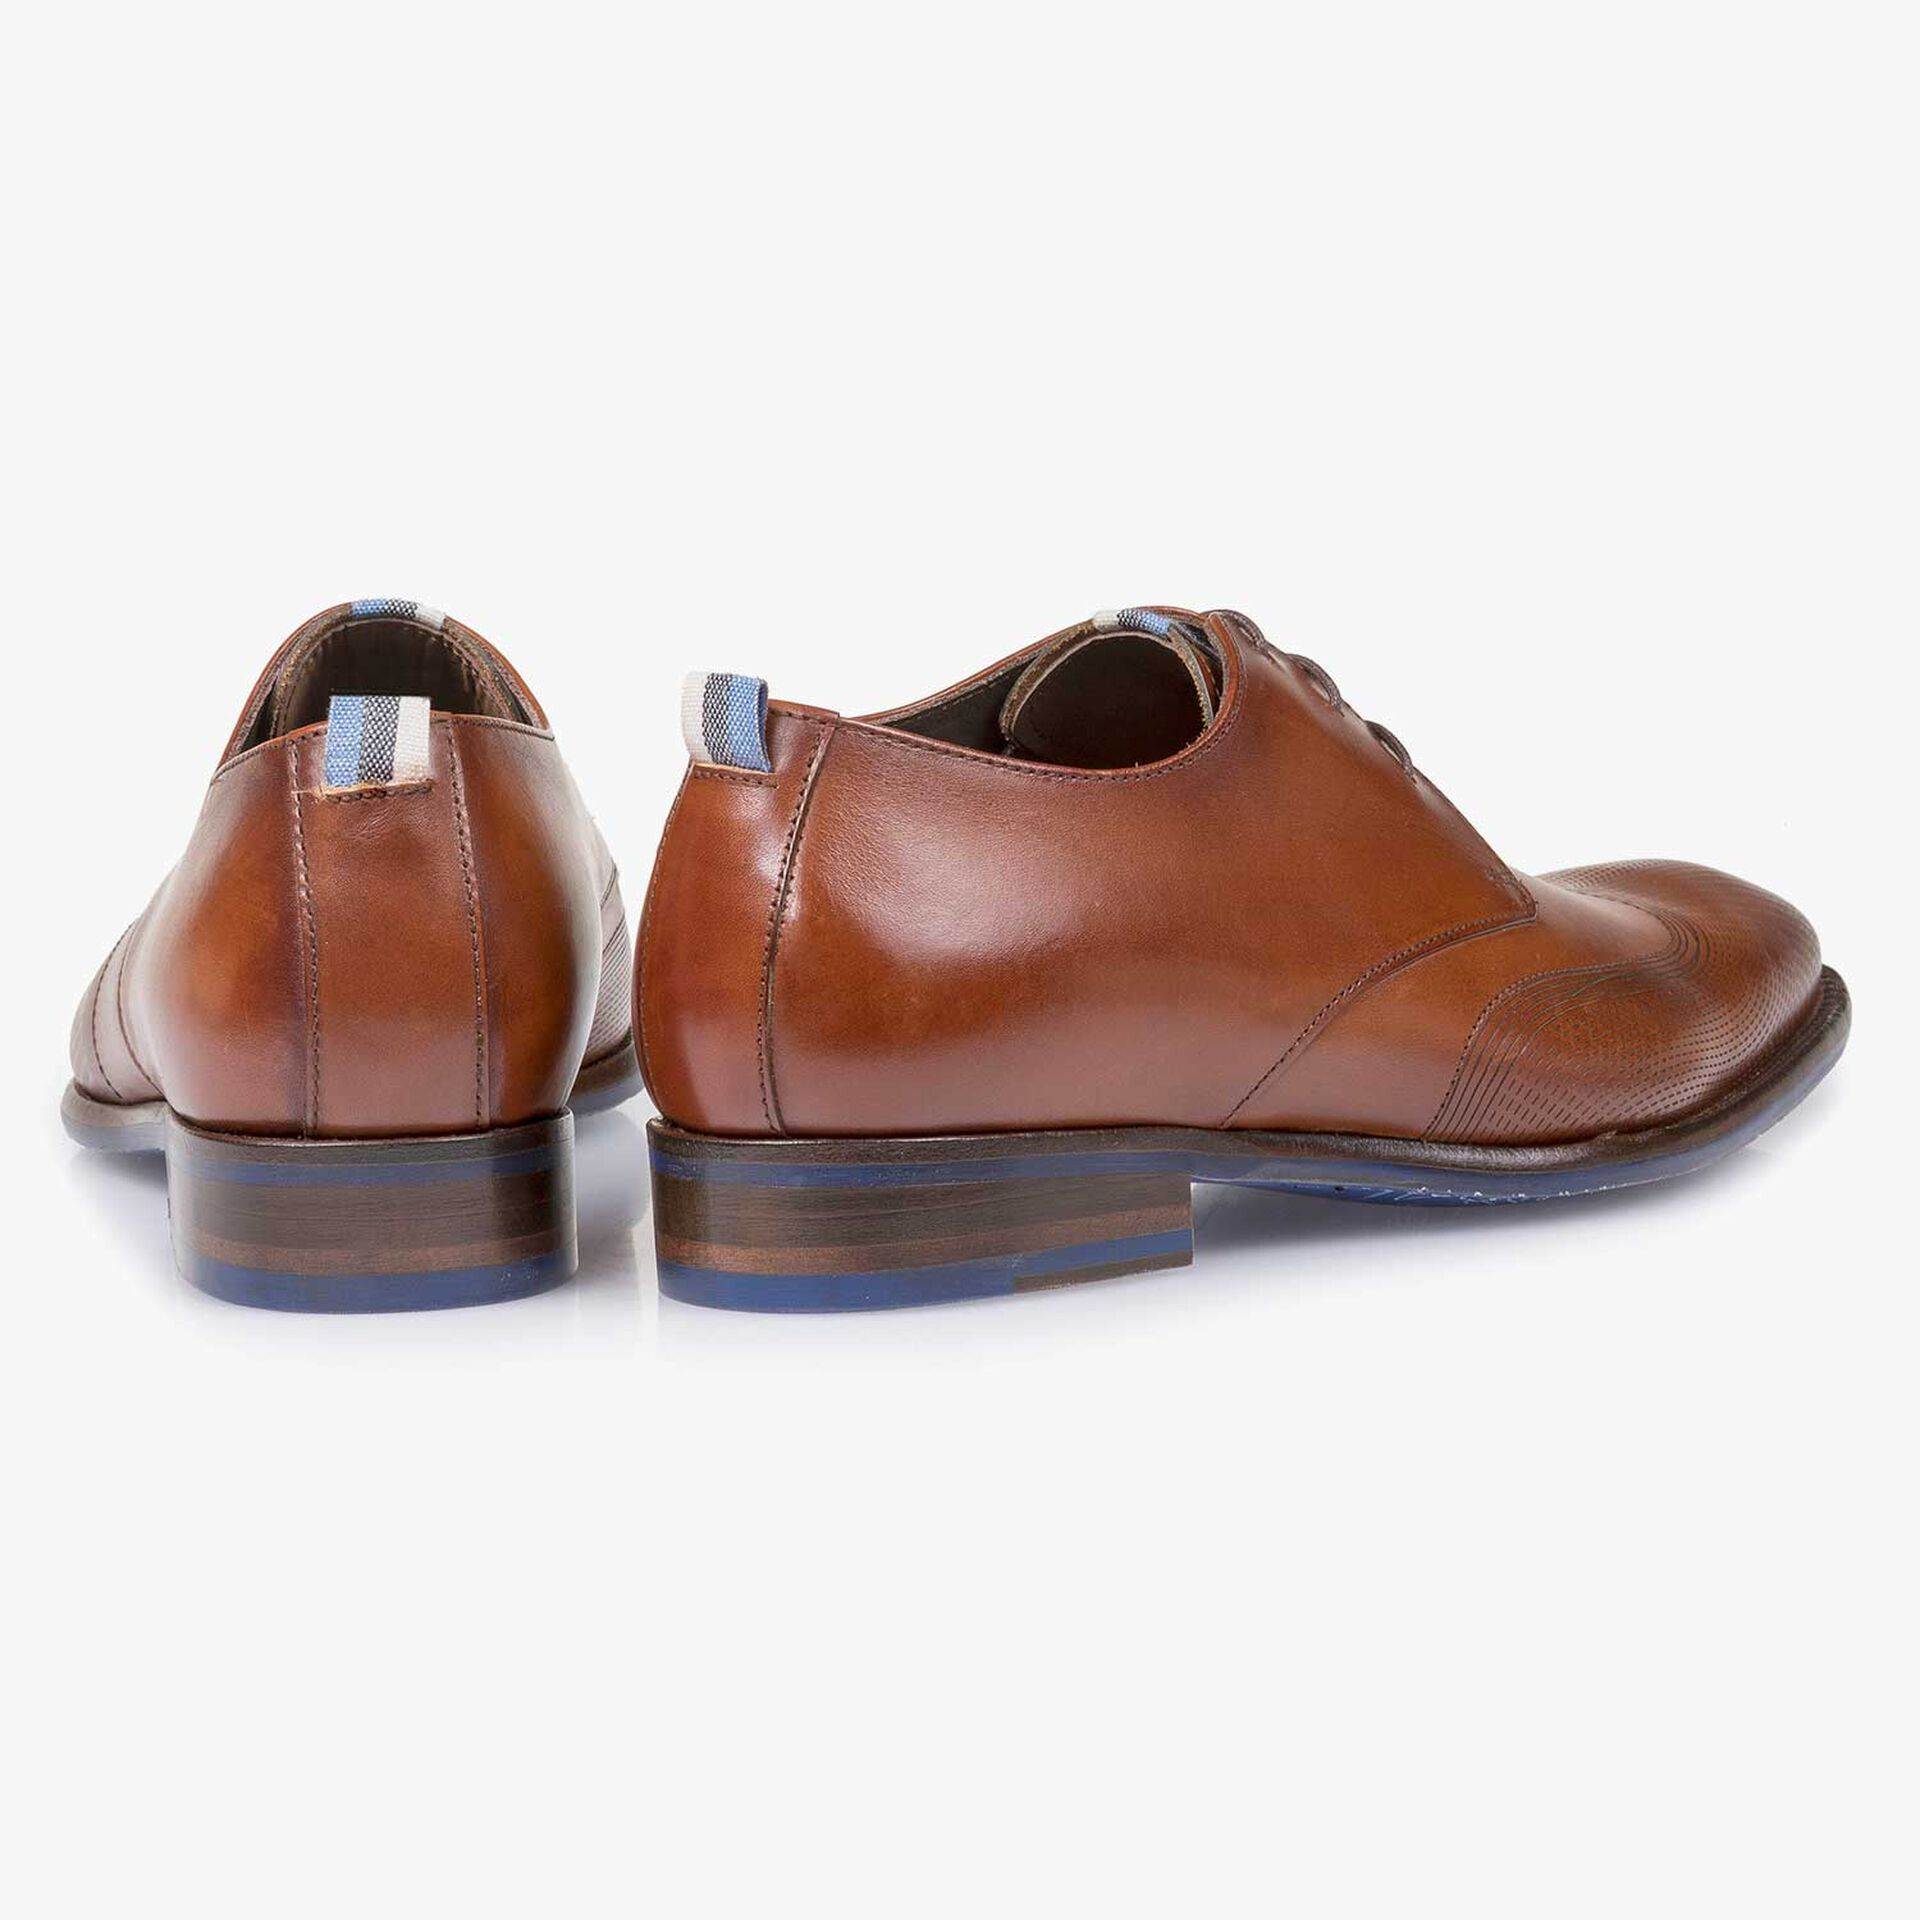 Cognac-colored calf leather lace shoe with a laser-cut pattern